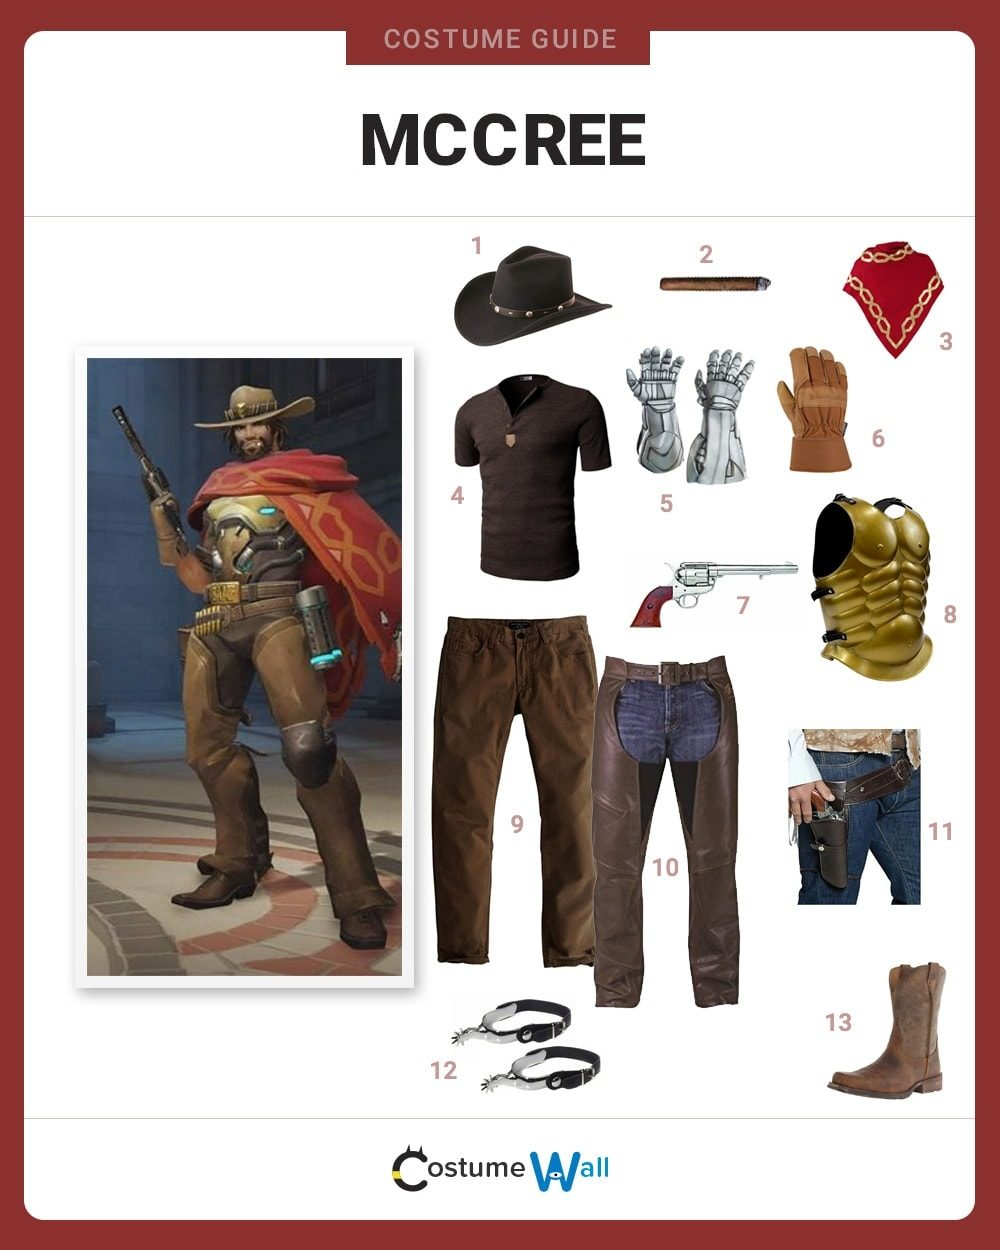 McCree Costume